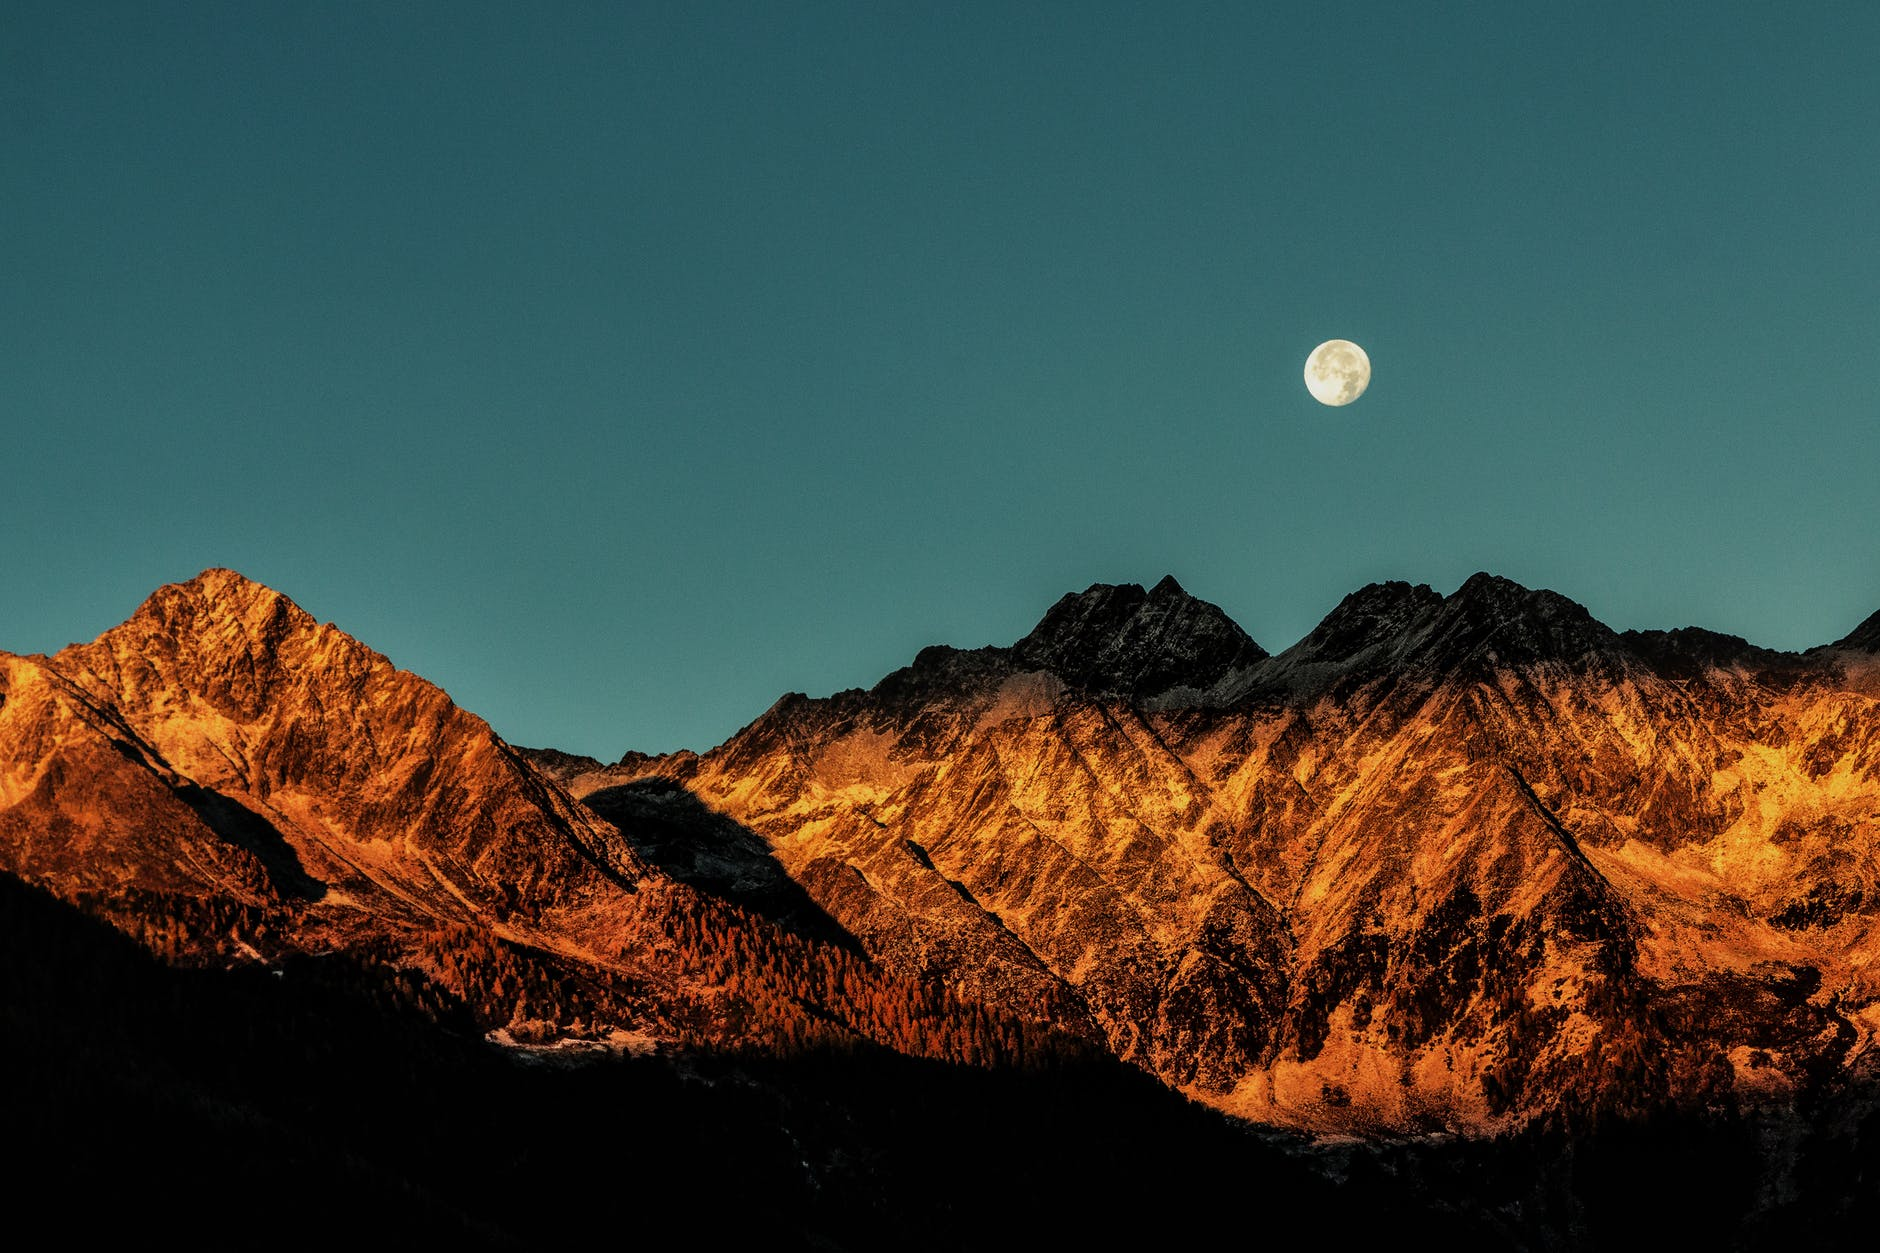 moon setting over mountains